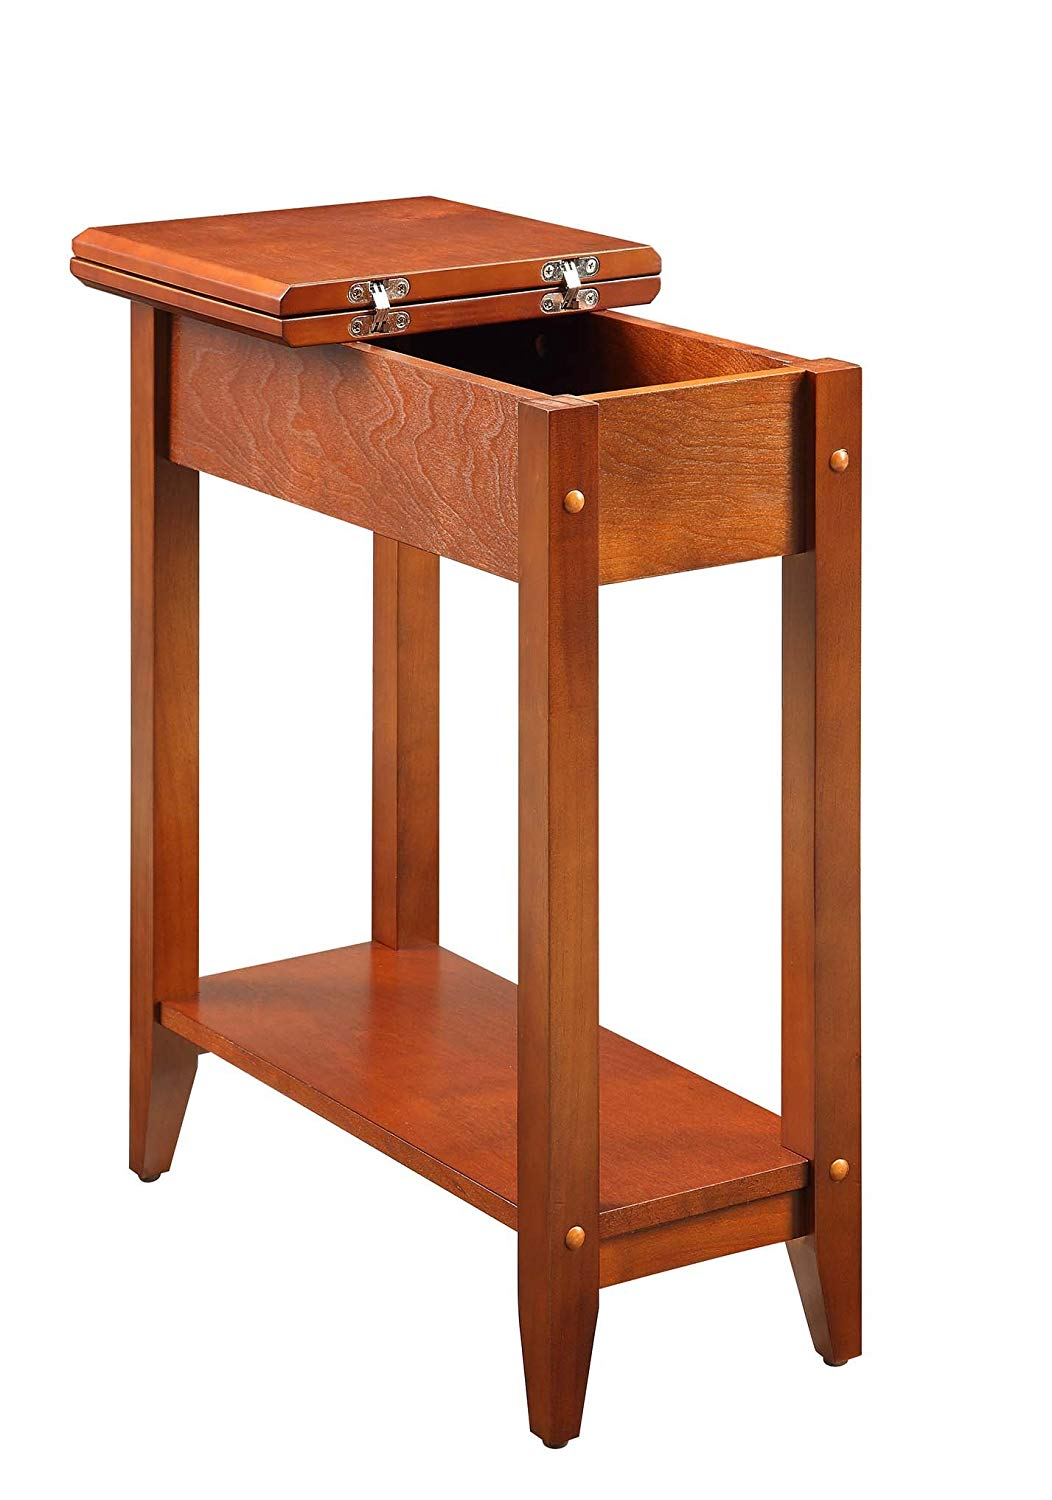 convenience concepts american heritage flip top end tier accent table target cherry home kitchen metal patio set teak furniture brown leather ott modern barn door pottery decor